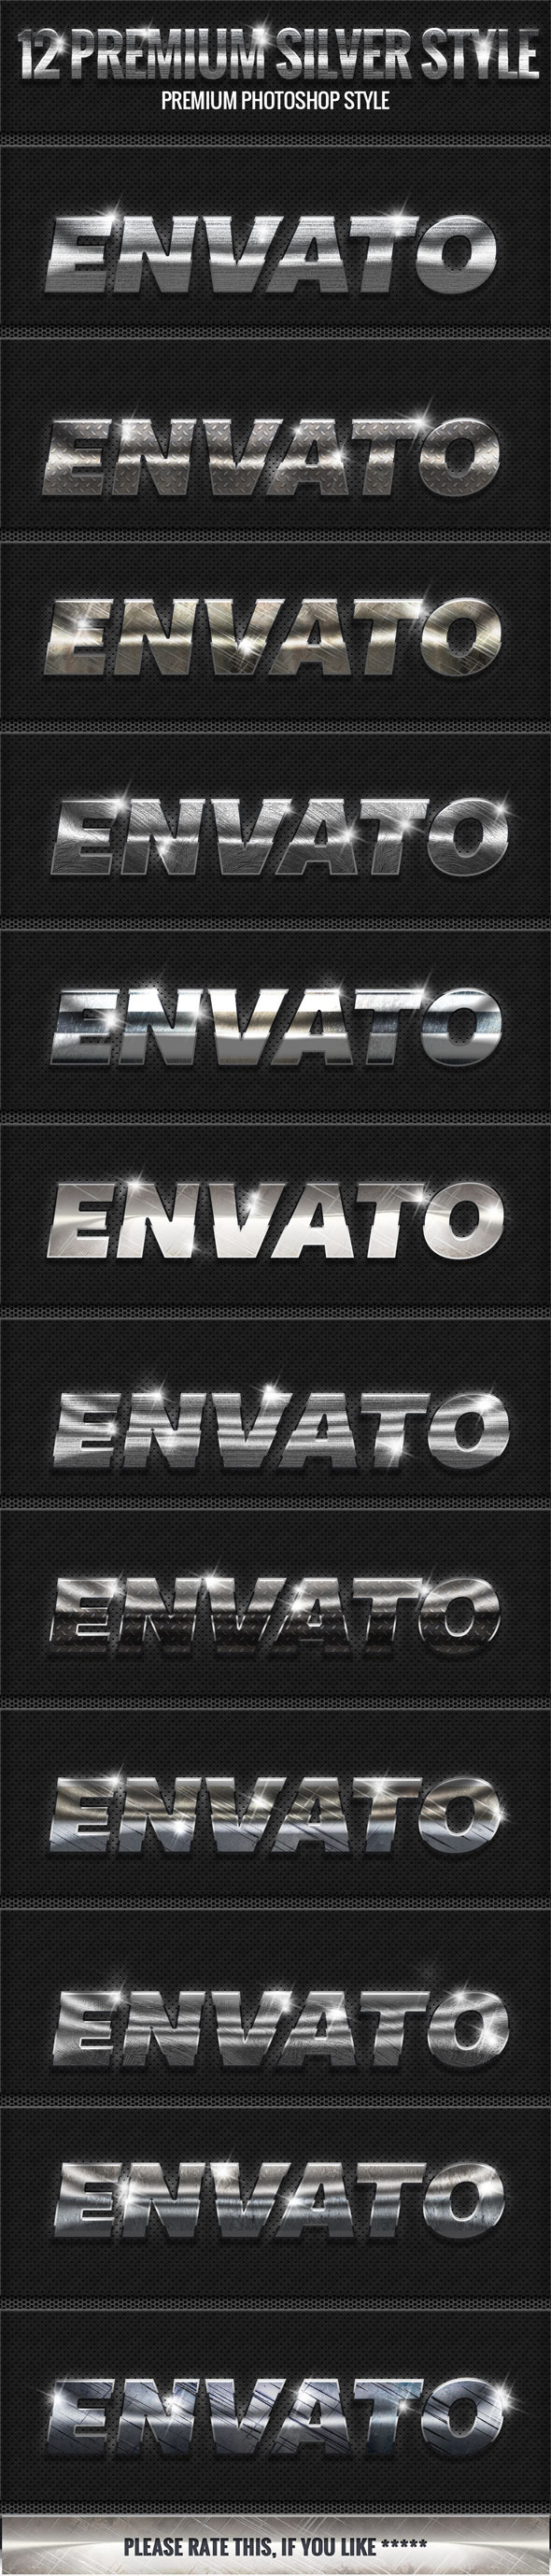 GraphicRiver 12 Silver Style Photoshop 10145589